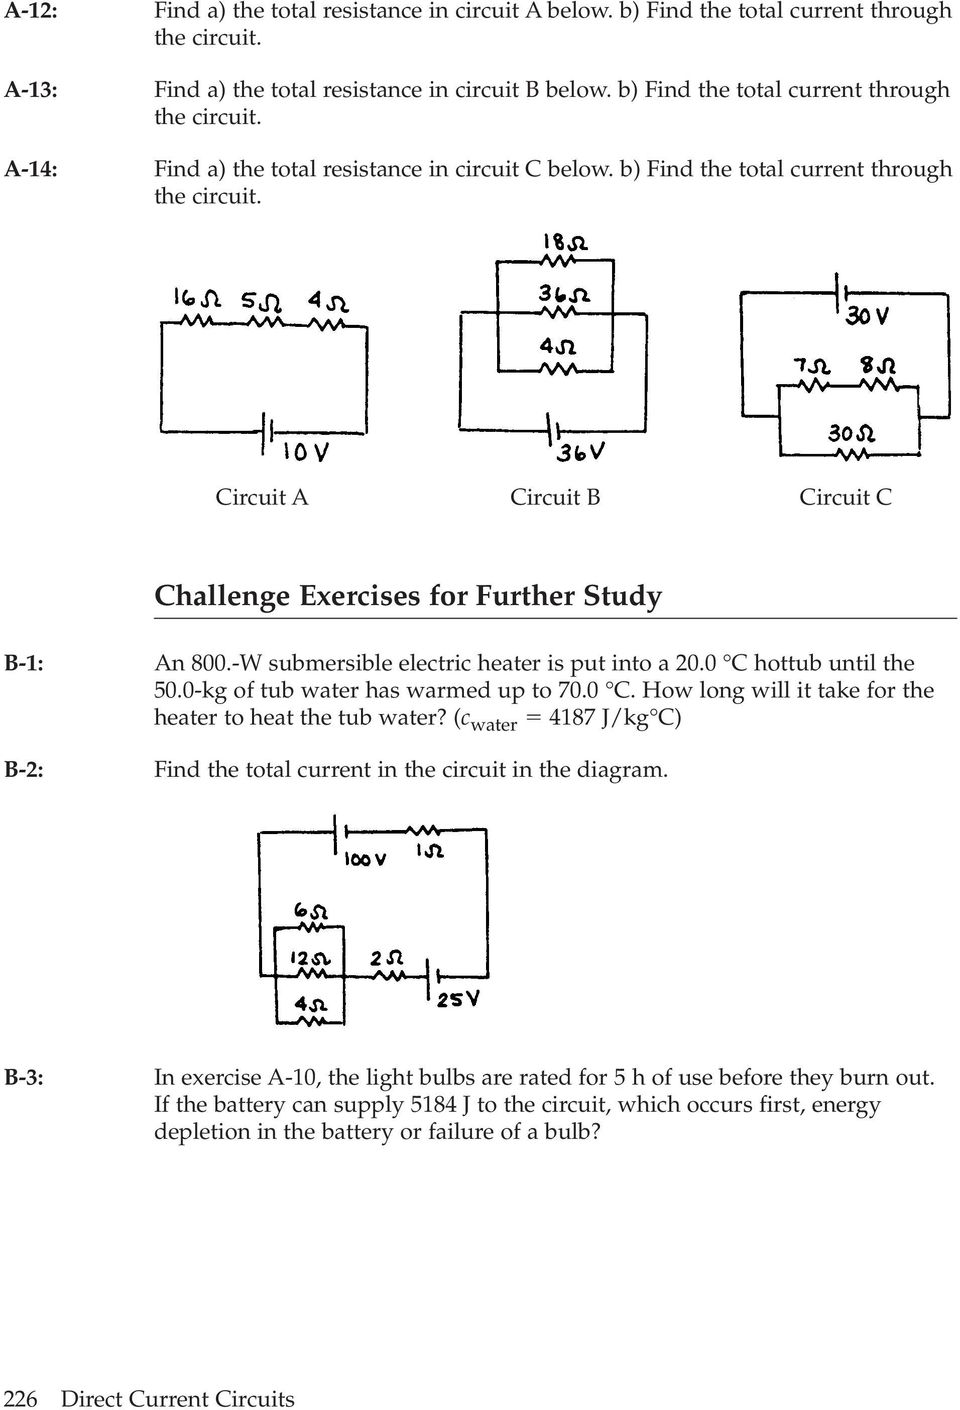 Circuit A Circuit B Circuit C Challenge Exercises for Further Study B-1: B-2: An 800.-W submersible electric heater is put into a 20.0 C hottub until the 50.0-kg of tub water has warmed up to 70.0 C. How long will it take for the heater to heat the tub water?